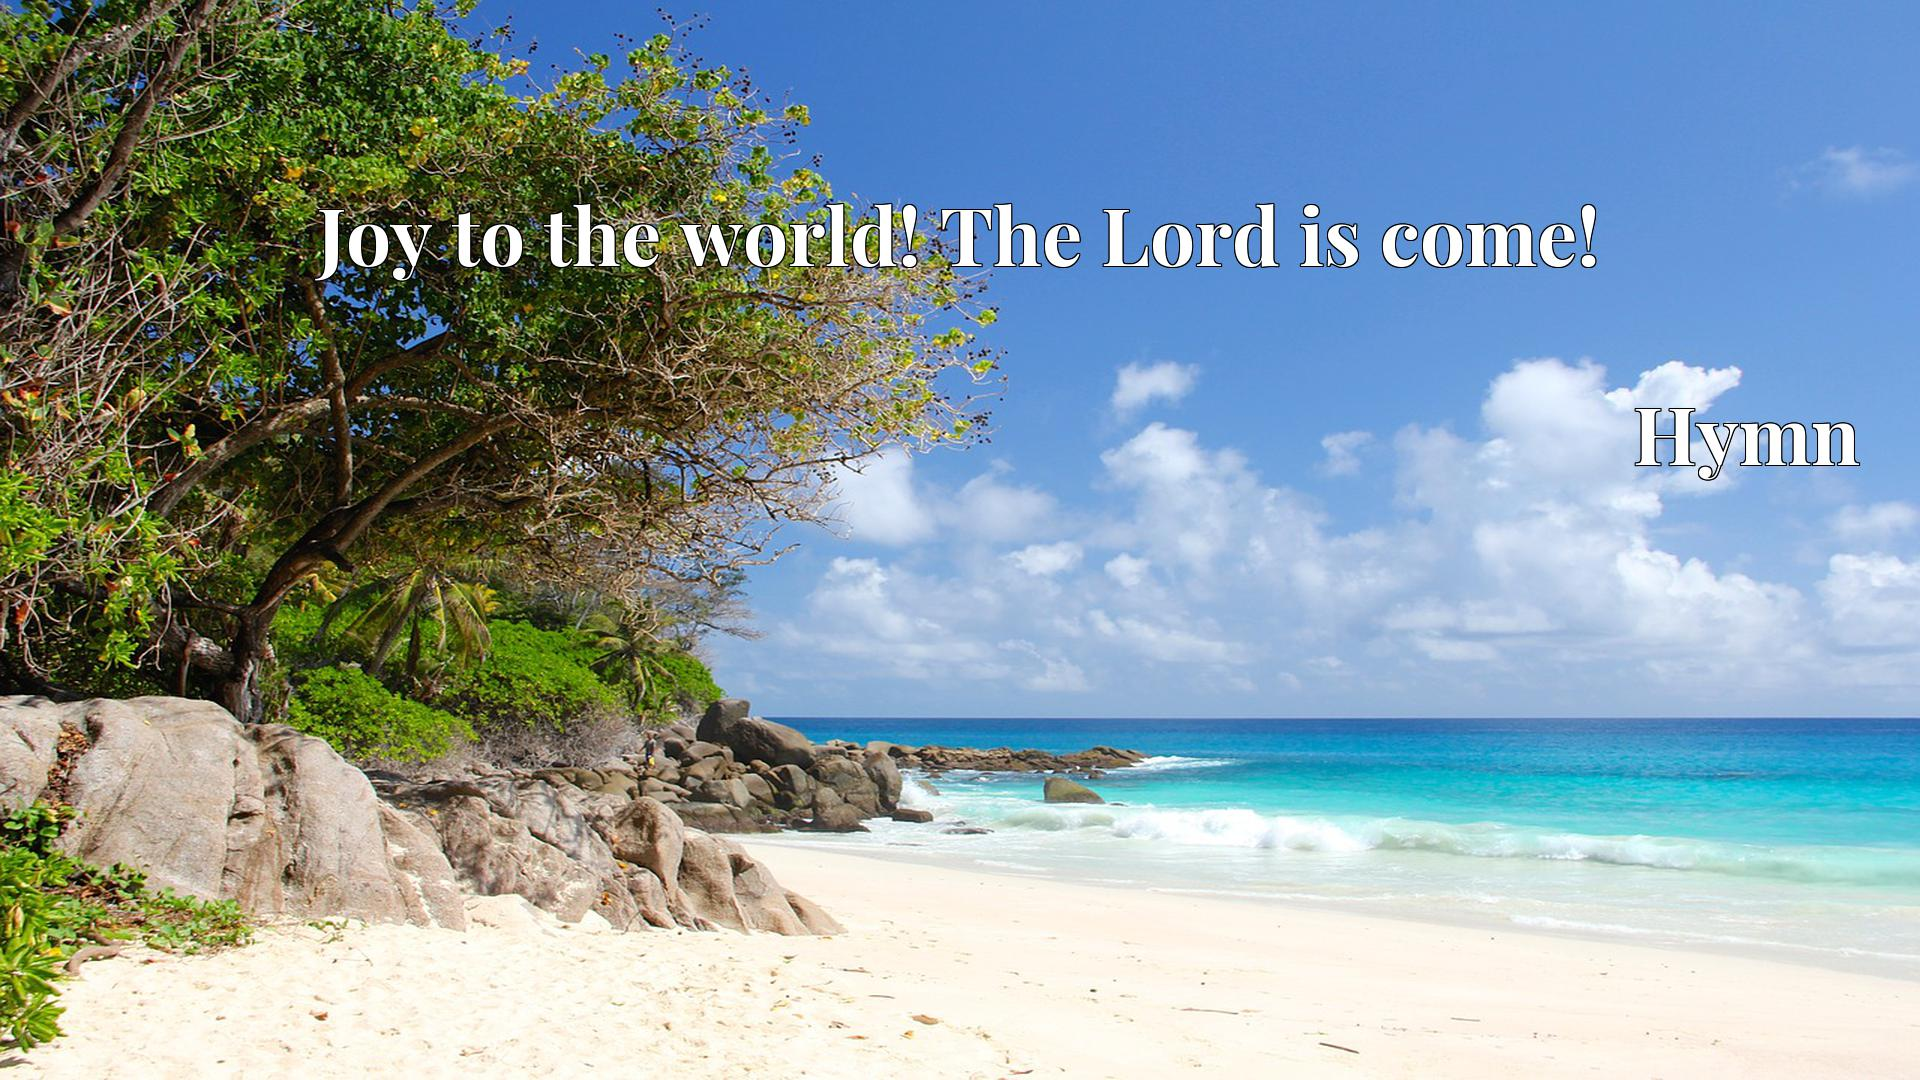 Joy to the world! The Lord is come! - Hymn